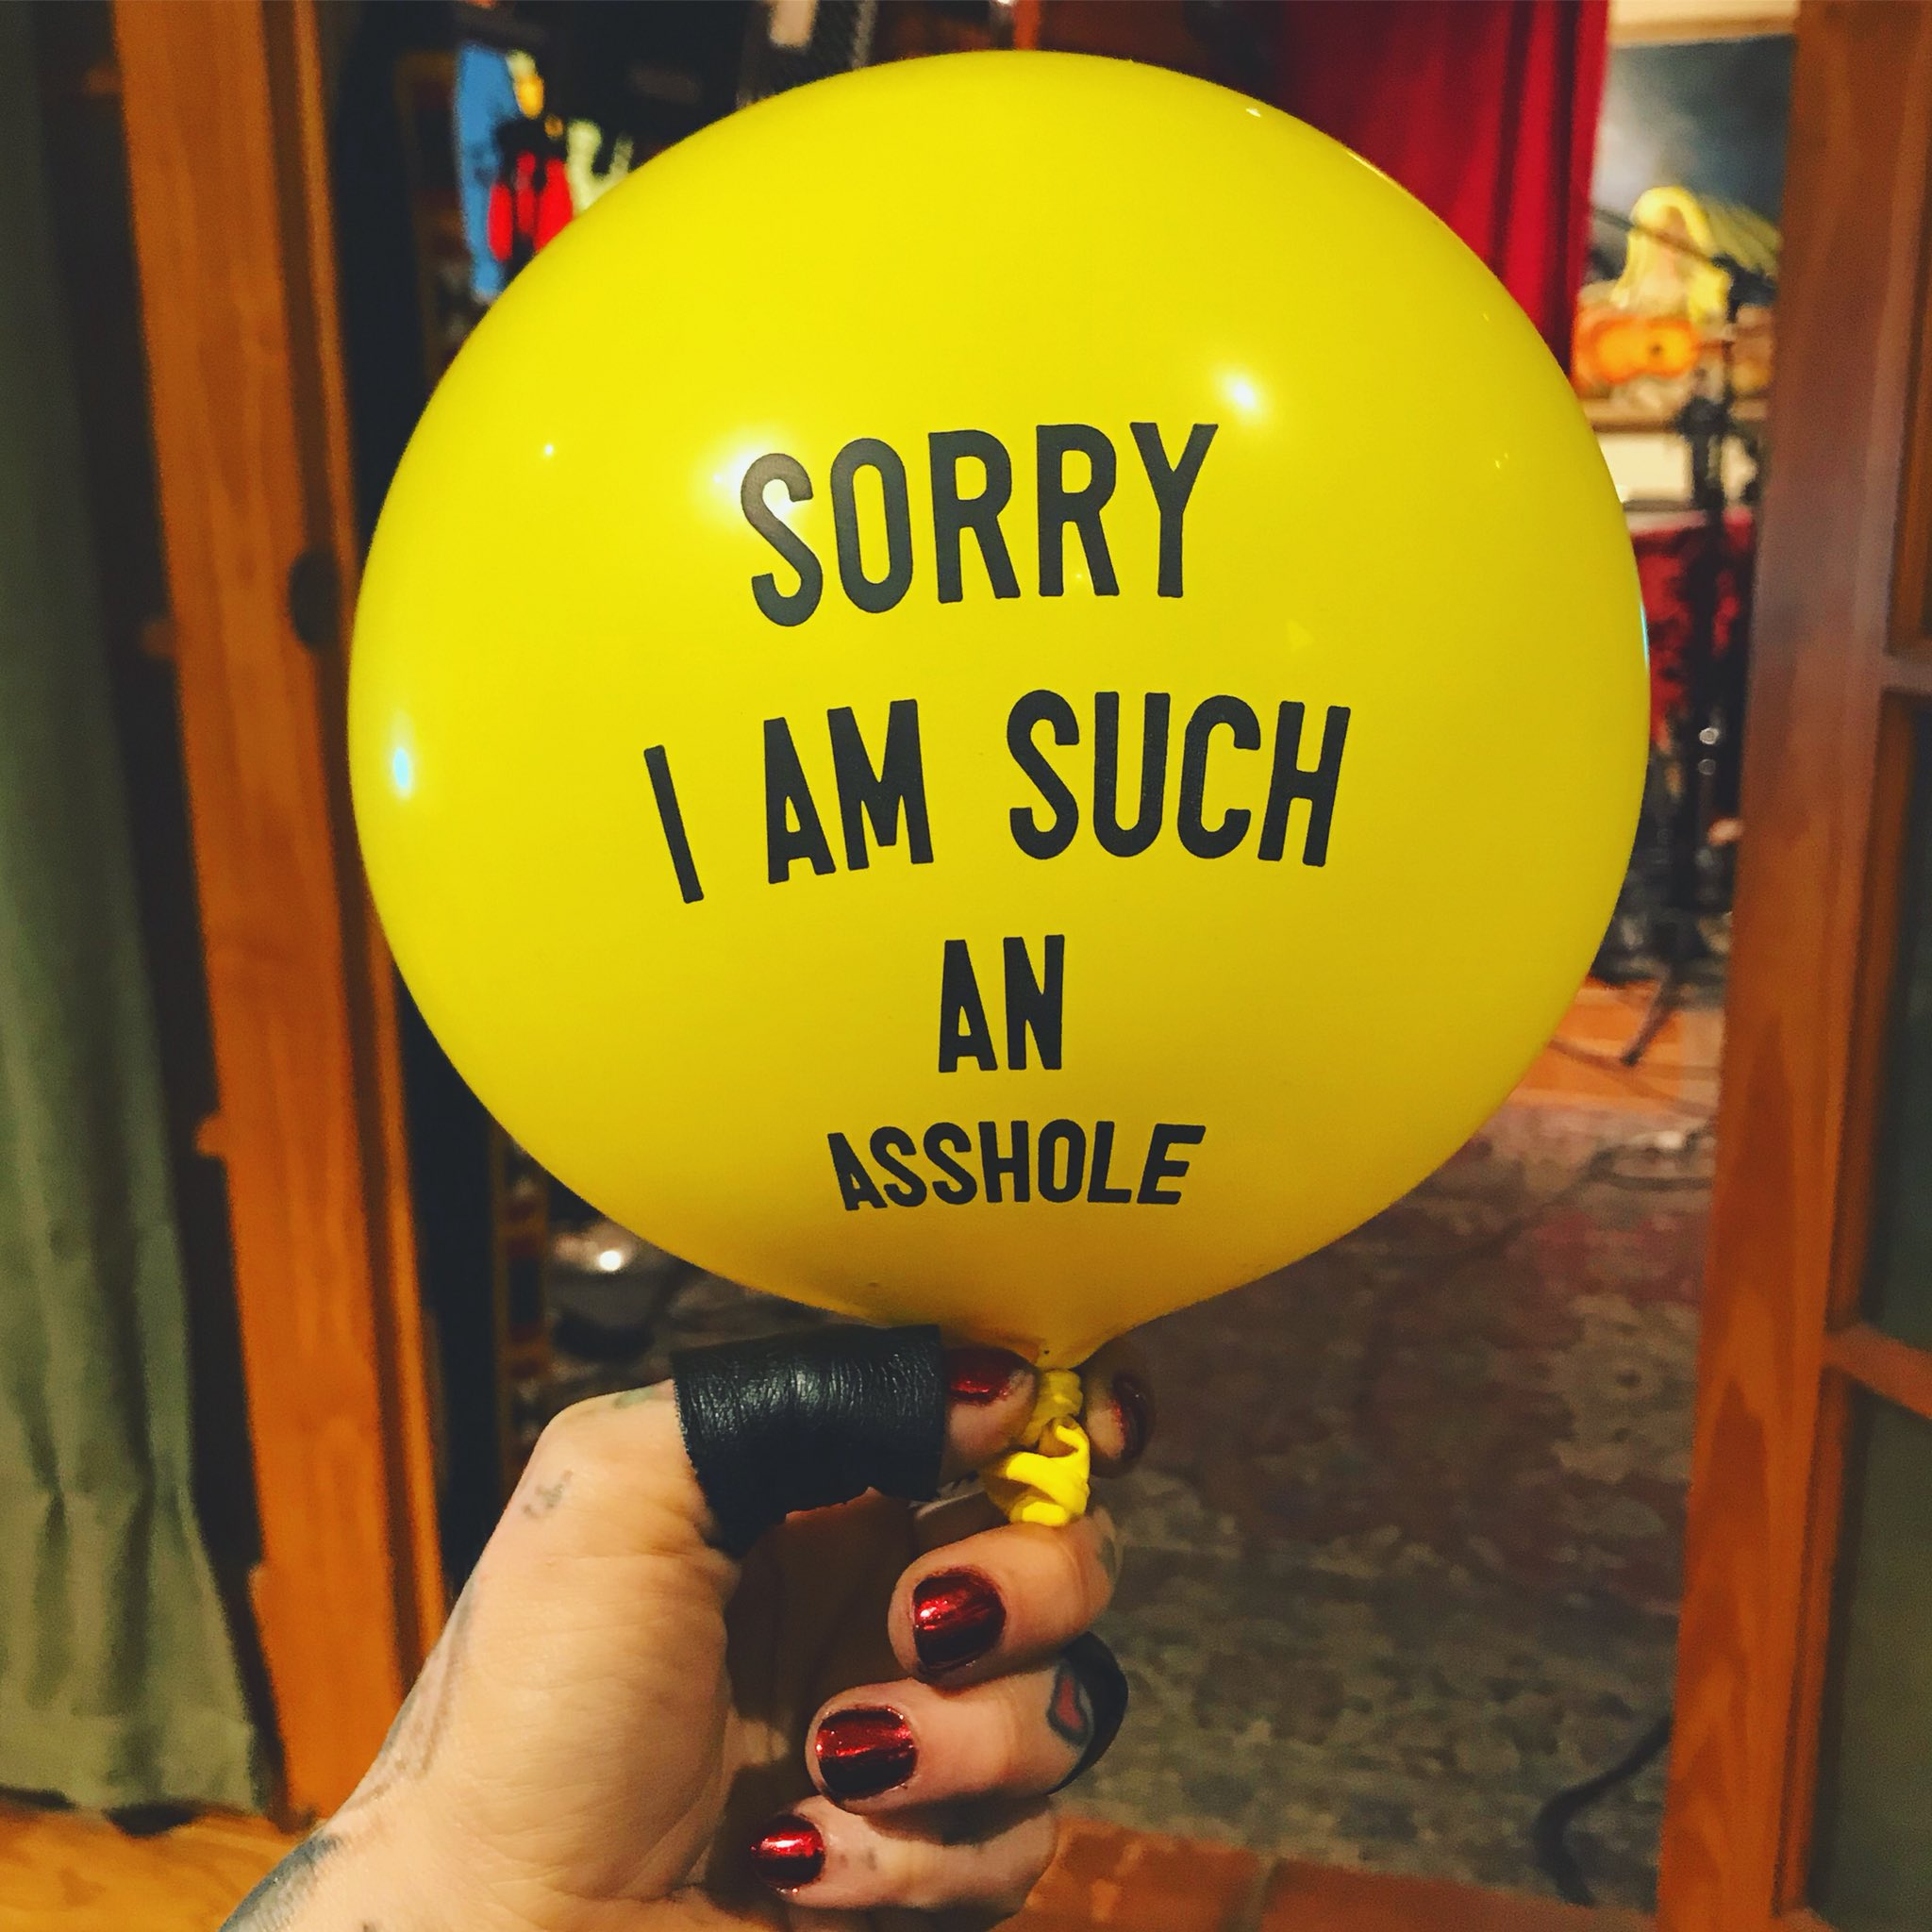 The best apology balloon ever. 🙃 https://t.co/hcmJyzRtua